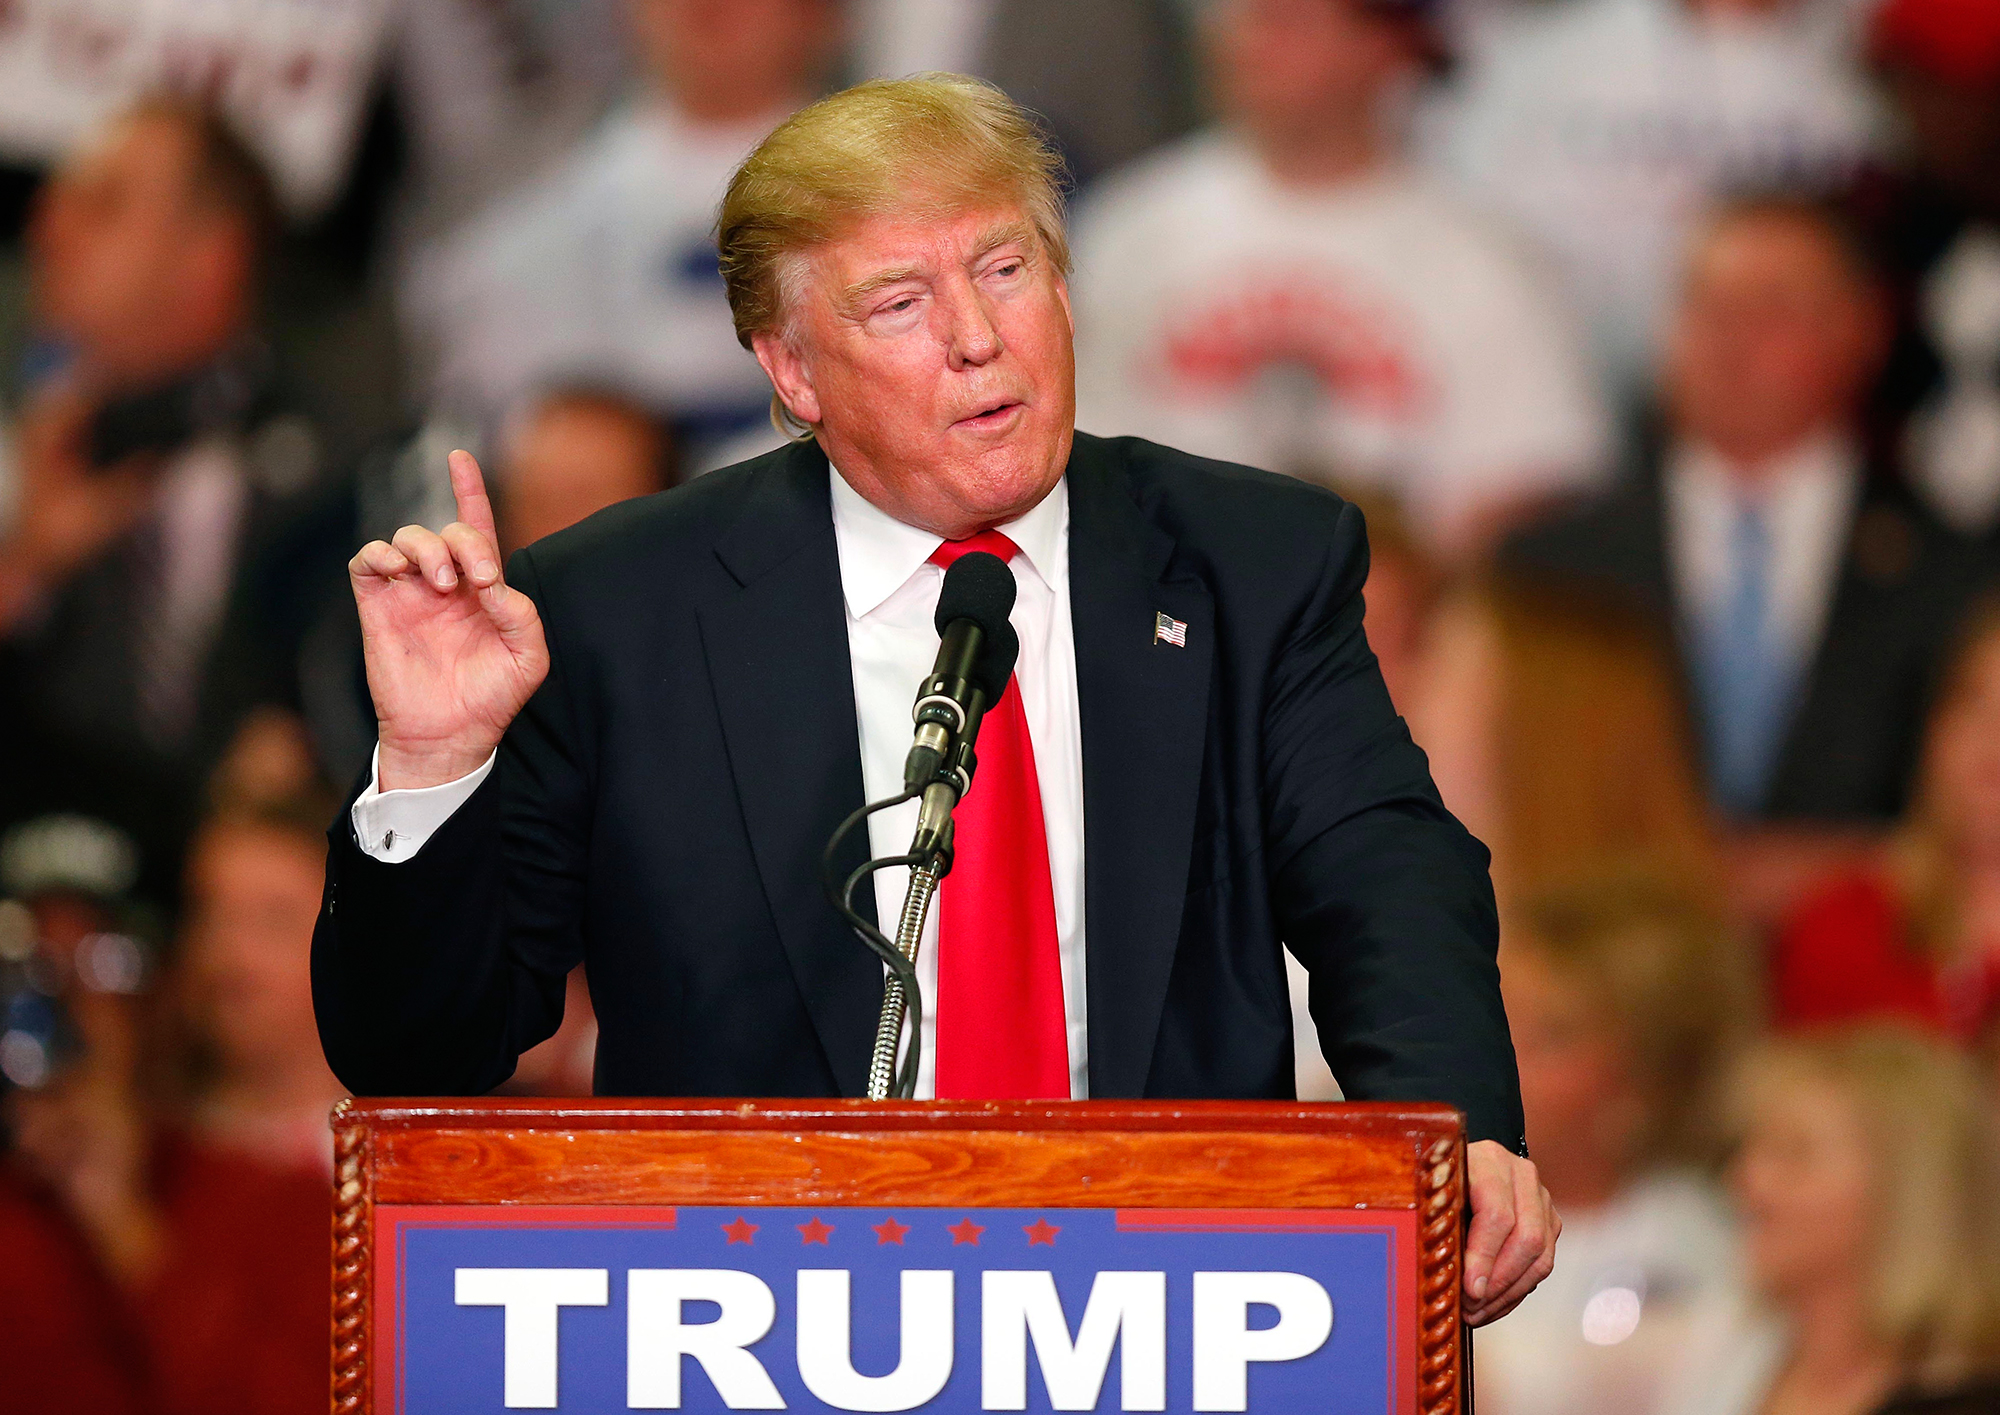 Donald Trump speaks during a campaign rally on March 7, 2016, in Madison, Miss.